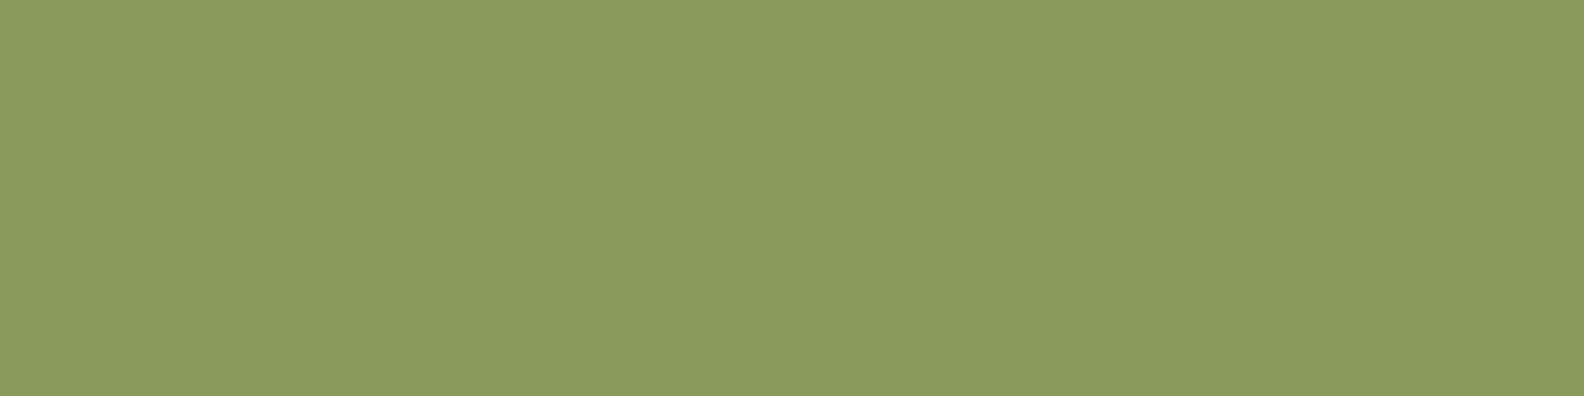 1584x396 Moss Green Solid Color Background